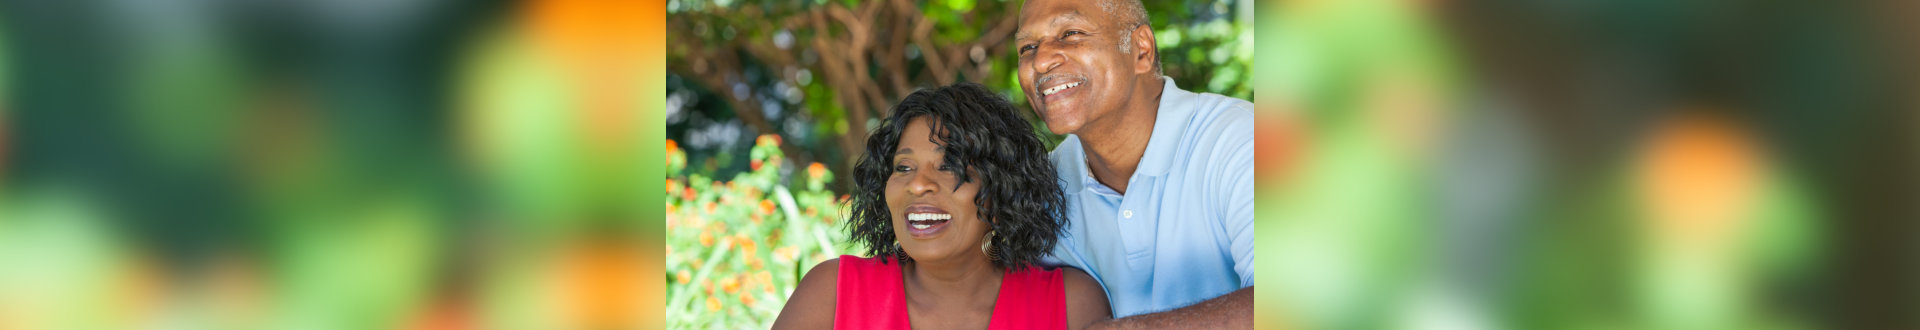 A happy senior African American man and woman couple in their sixties outside together smiling